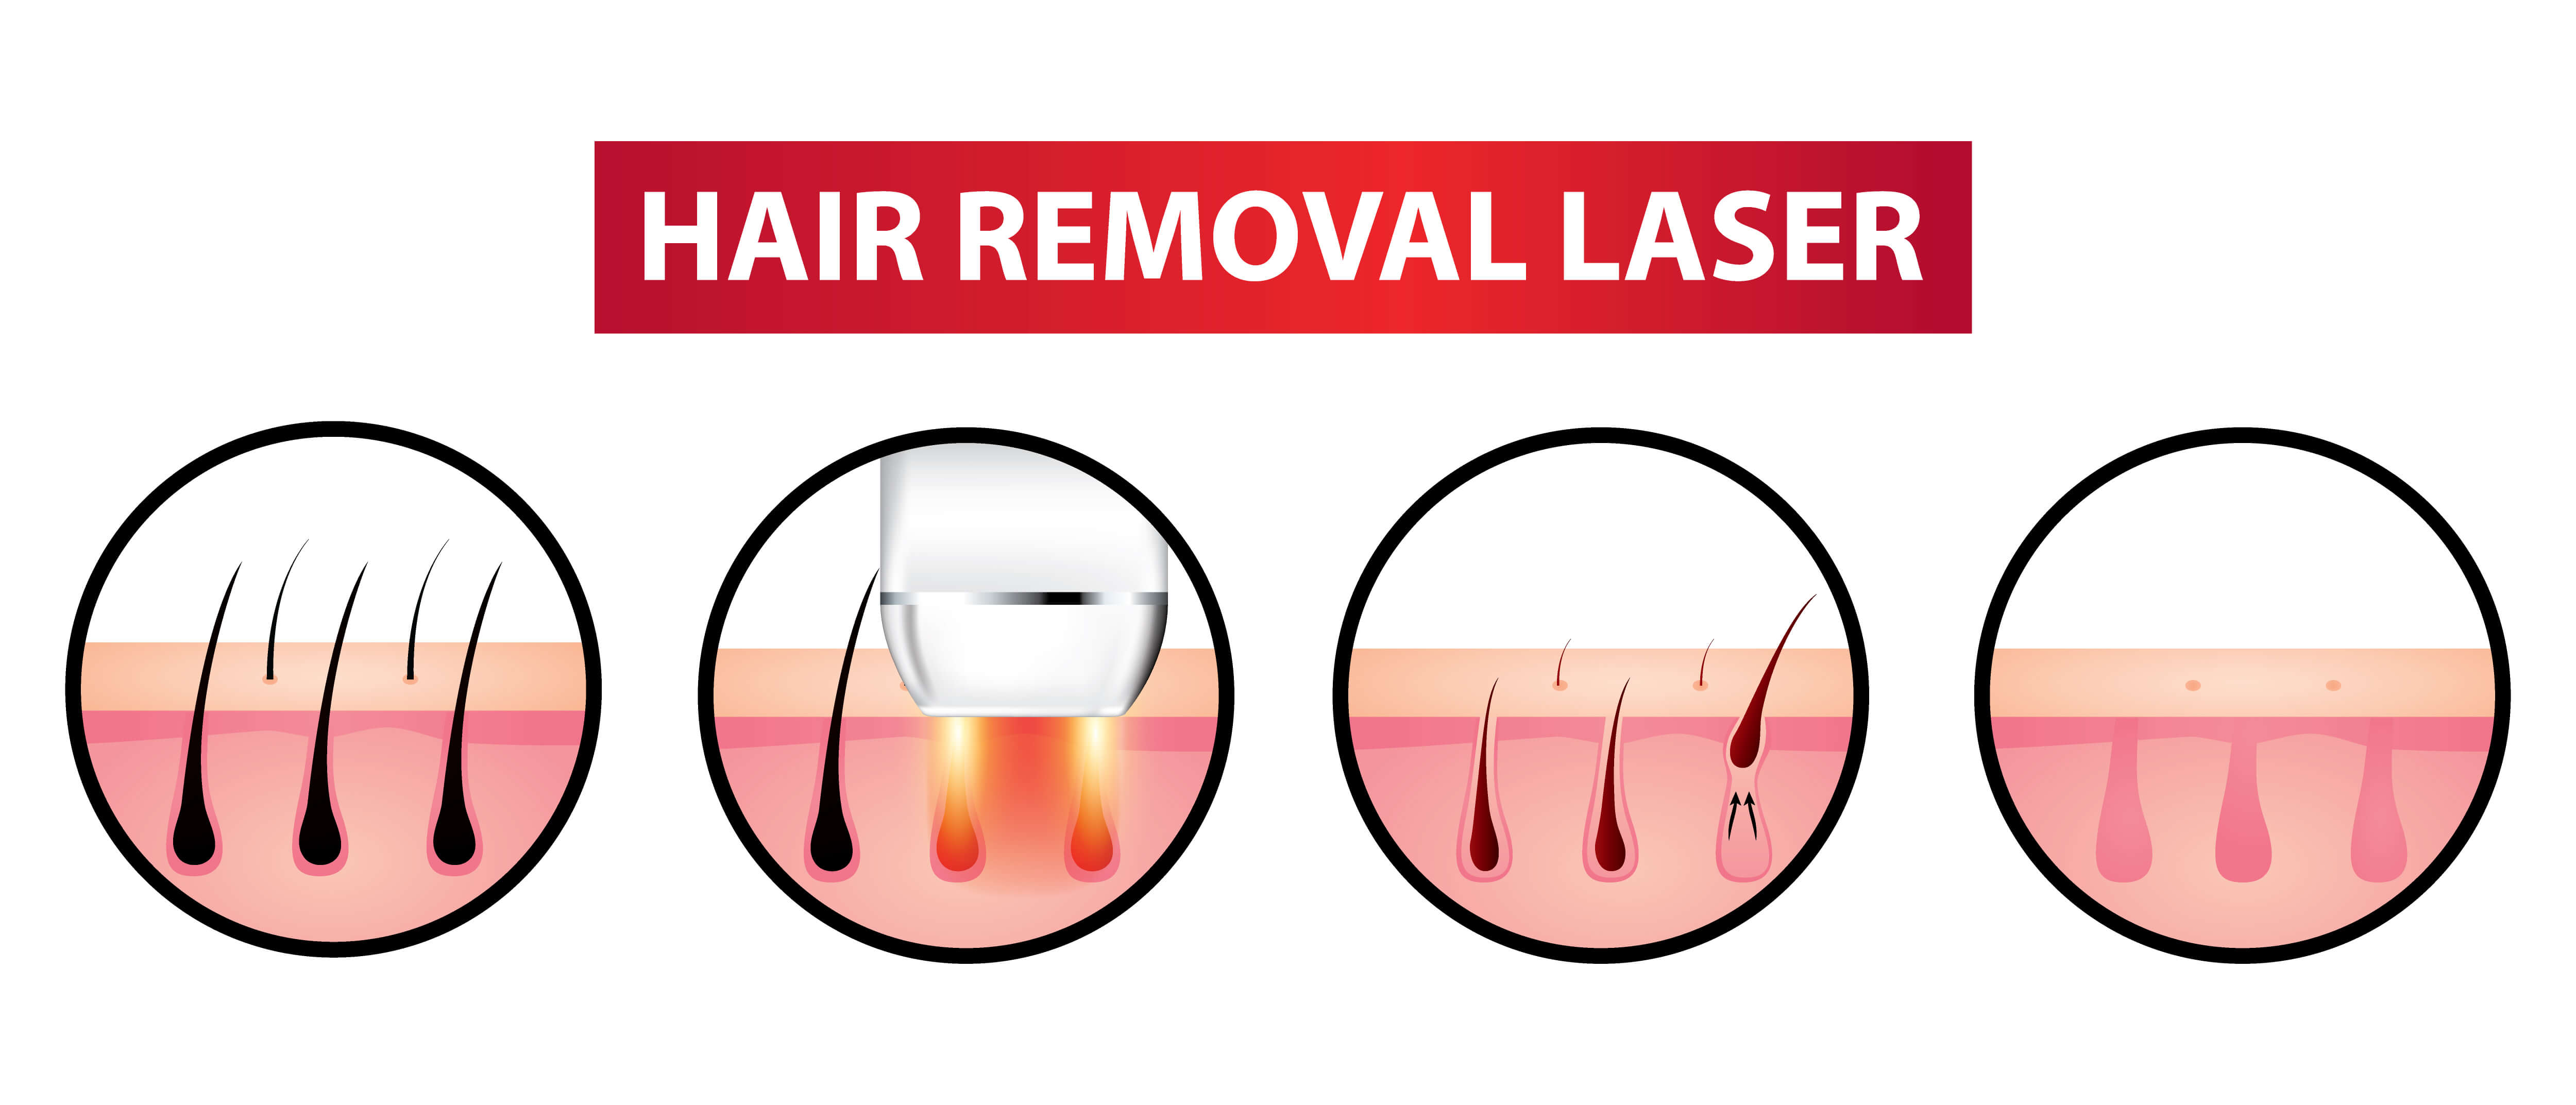 Infographic on hair removal laser treatment